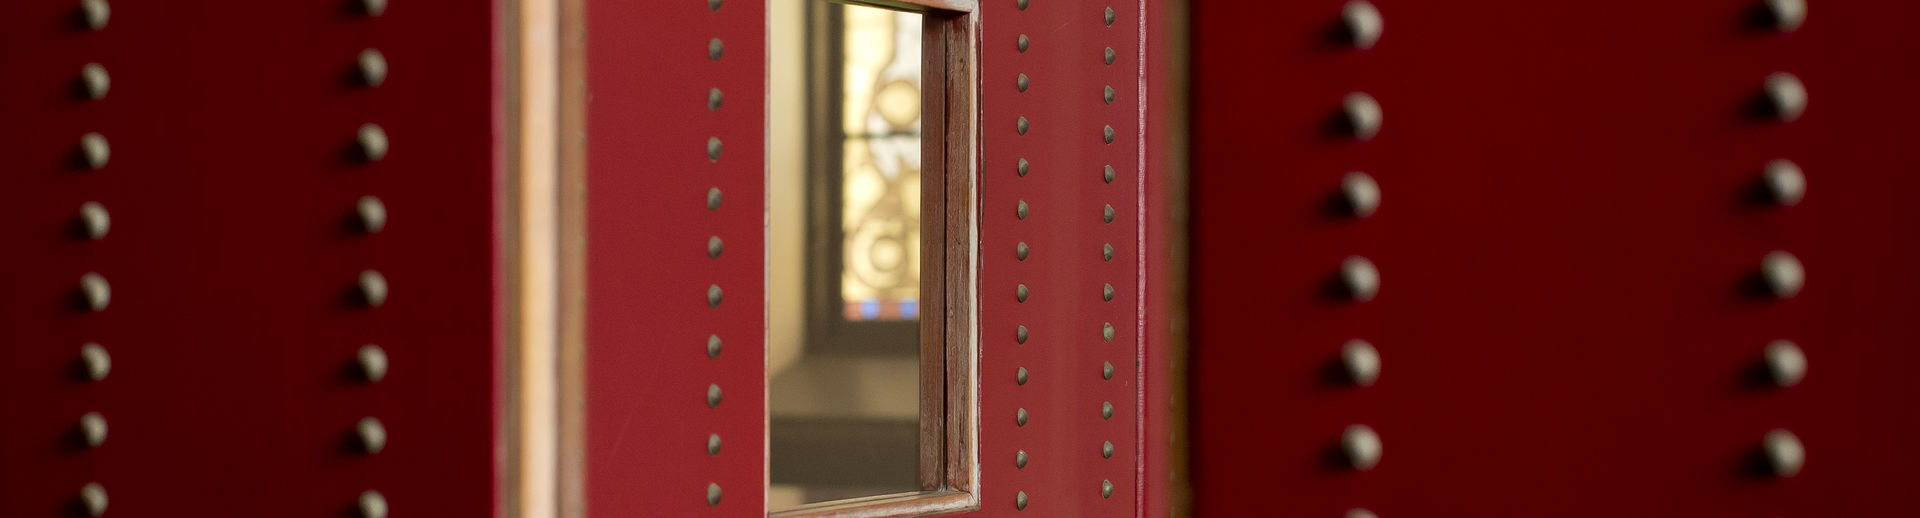 A close up of a mirror within a red frame and a wall laden with studs.